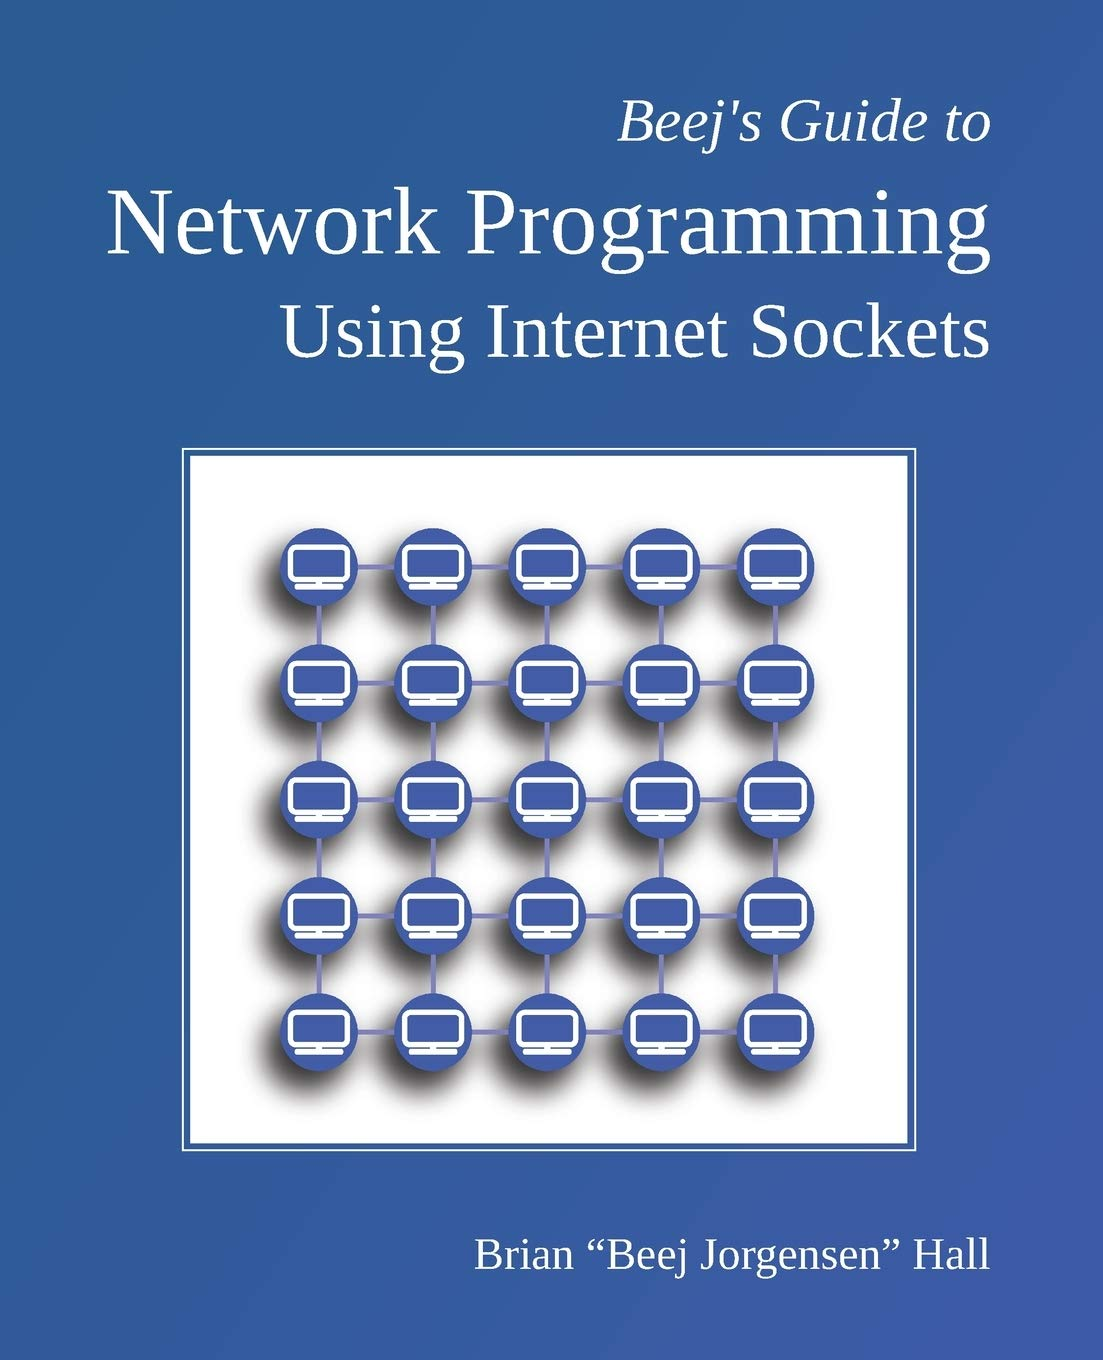 Image OfBeej's Guide To Network Programming: Using Internet Sockets